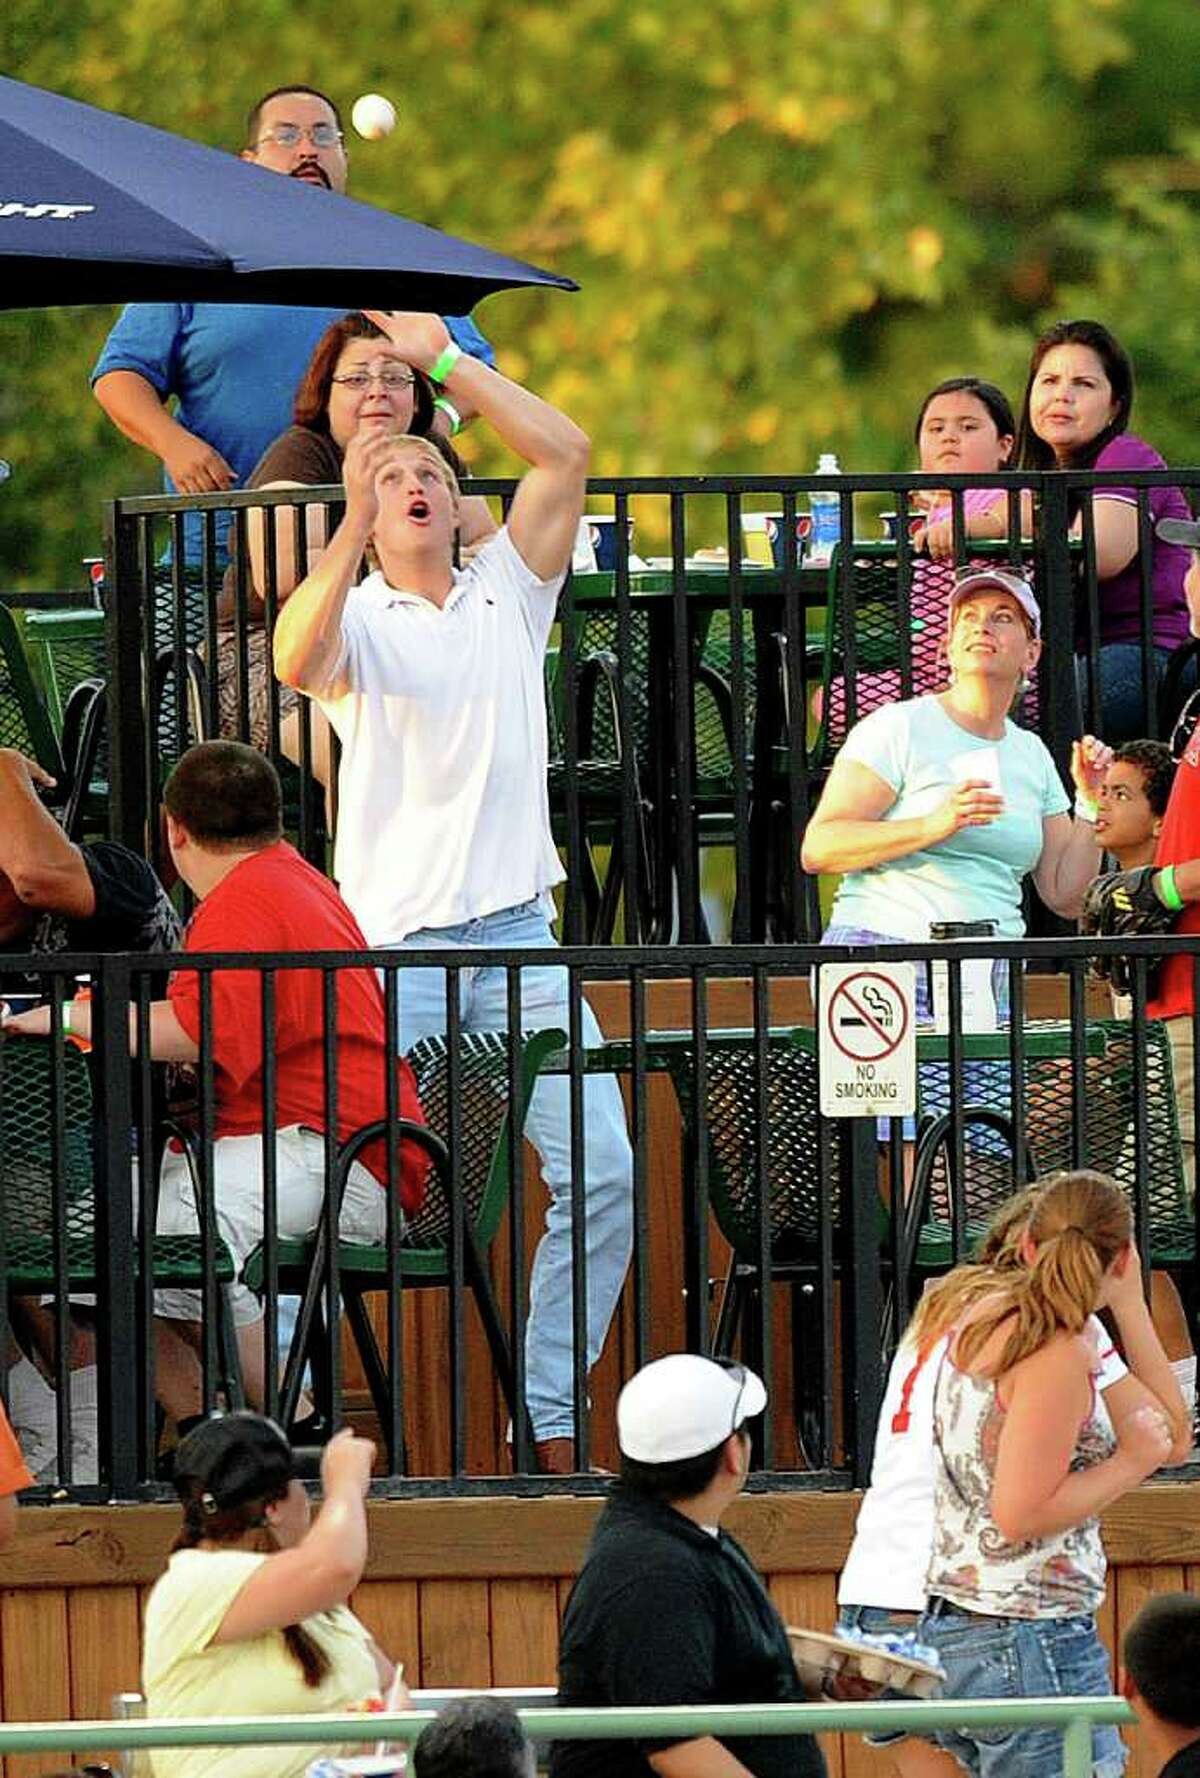 A fan reaches for a foul ball hit into the stands during Texas League action between the Northwest Arkansas Naturals and the San Antonio Missions at Wolff Stadium on Thursday, July 7, 2011. BILLY CALZADA / gcalzada@express-news.net